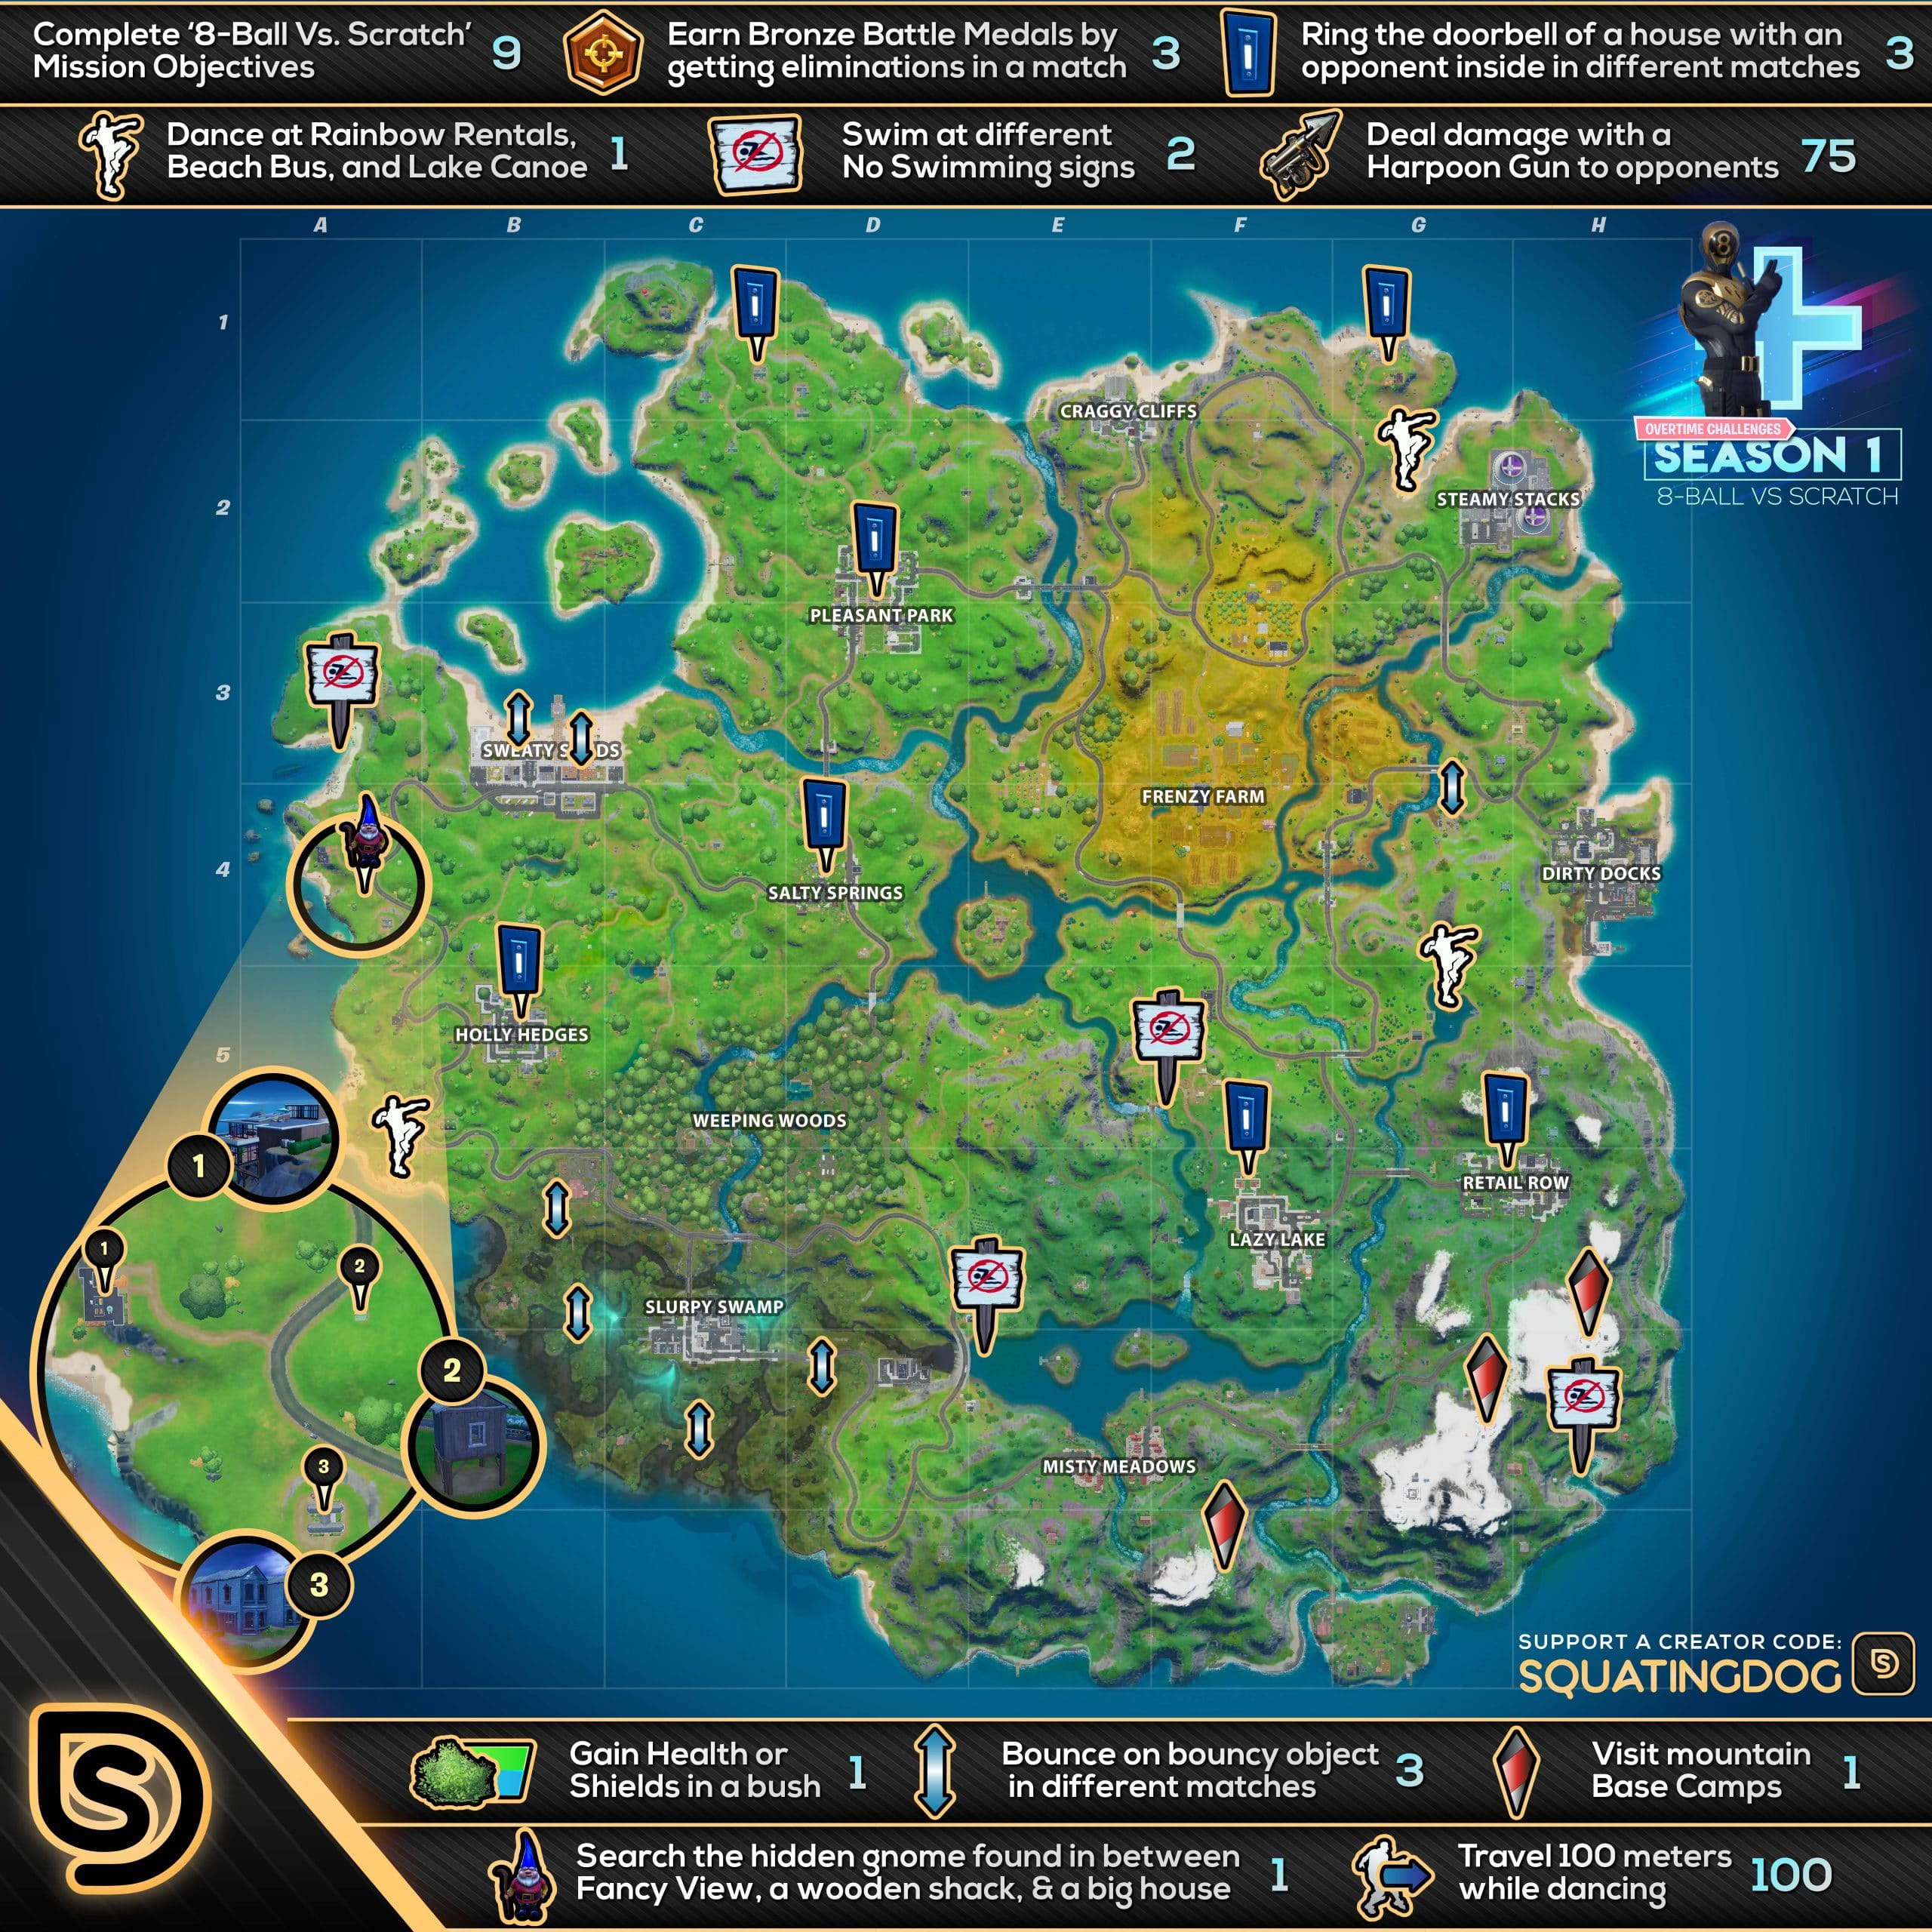 Fortnite Season 11 Overtime Challenges - 8-Ball Vs Scratch Cheat Sheet